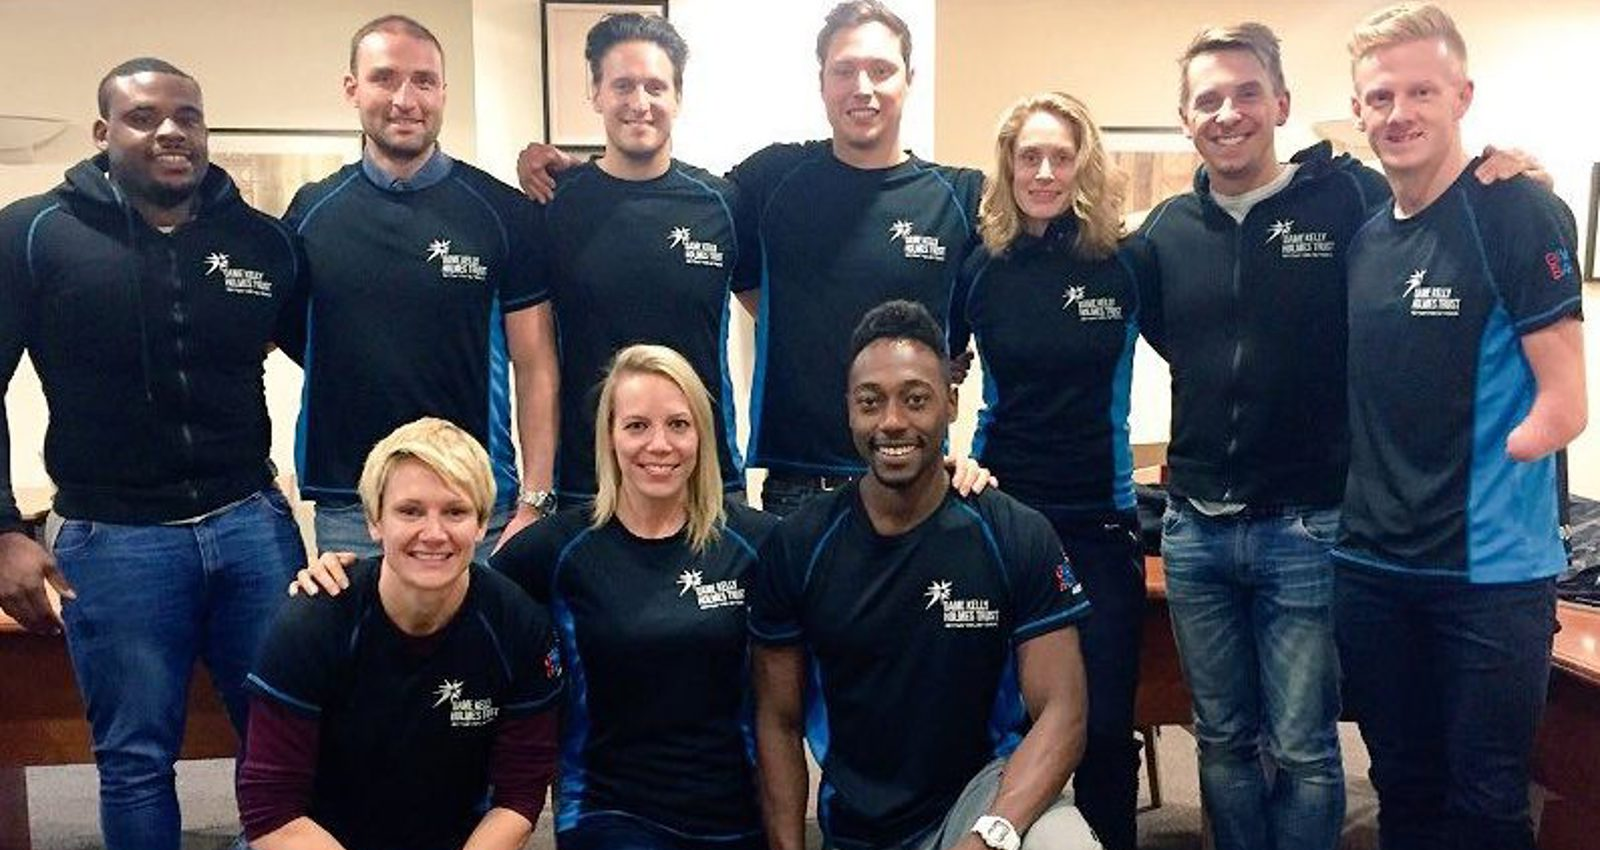 Our new national athlete leaders are set to boost support we offer